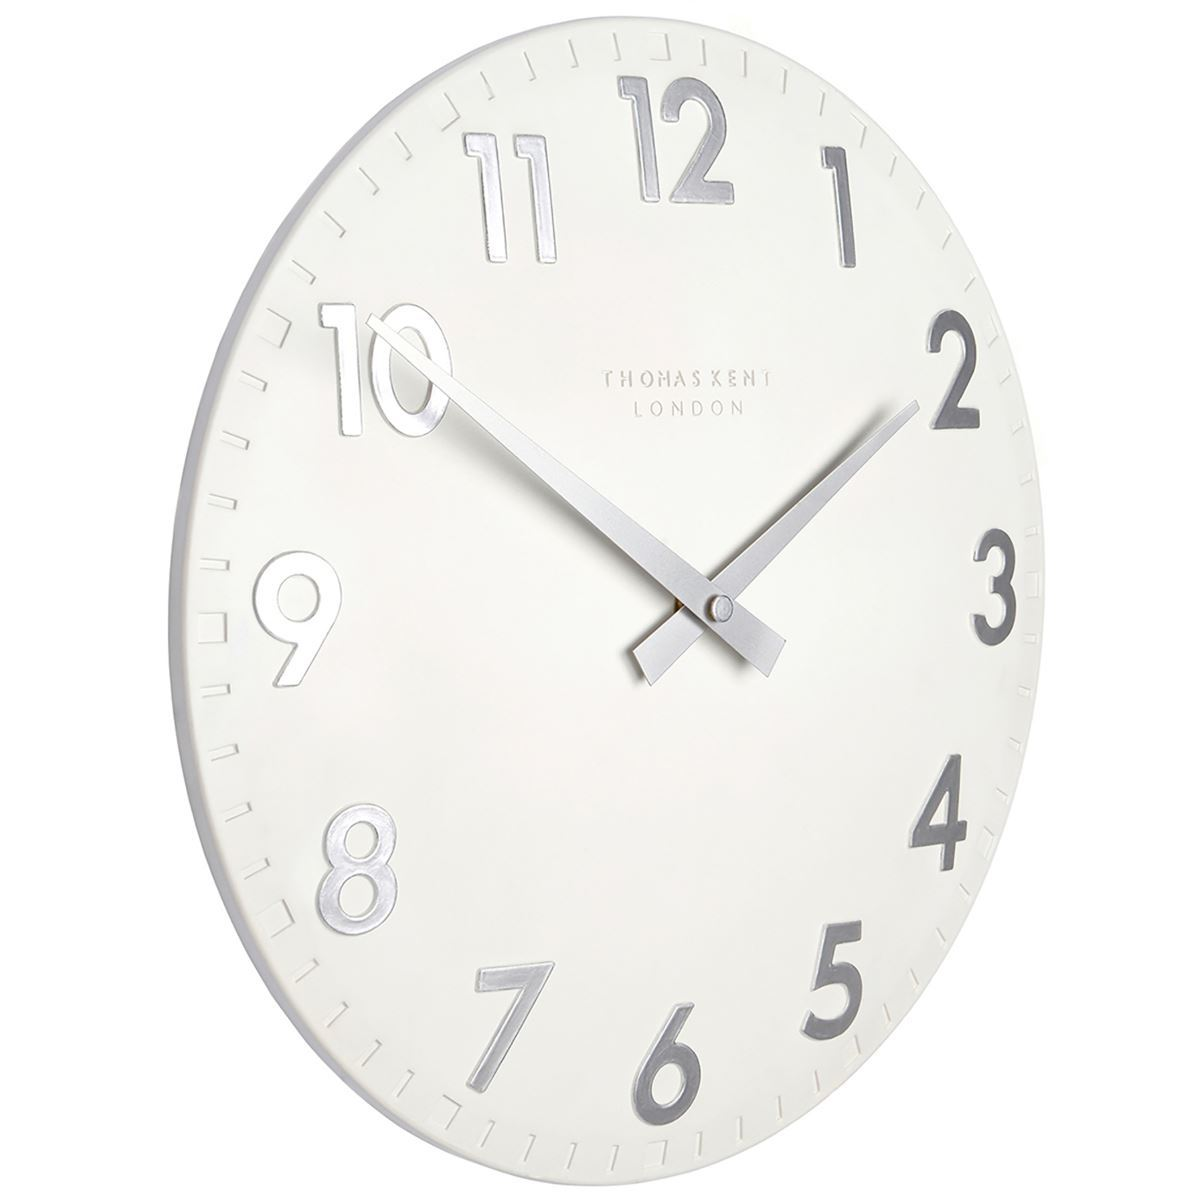 Thomas Kent Camden Wall Clock, Snowberry White, 31cm